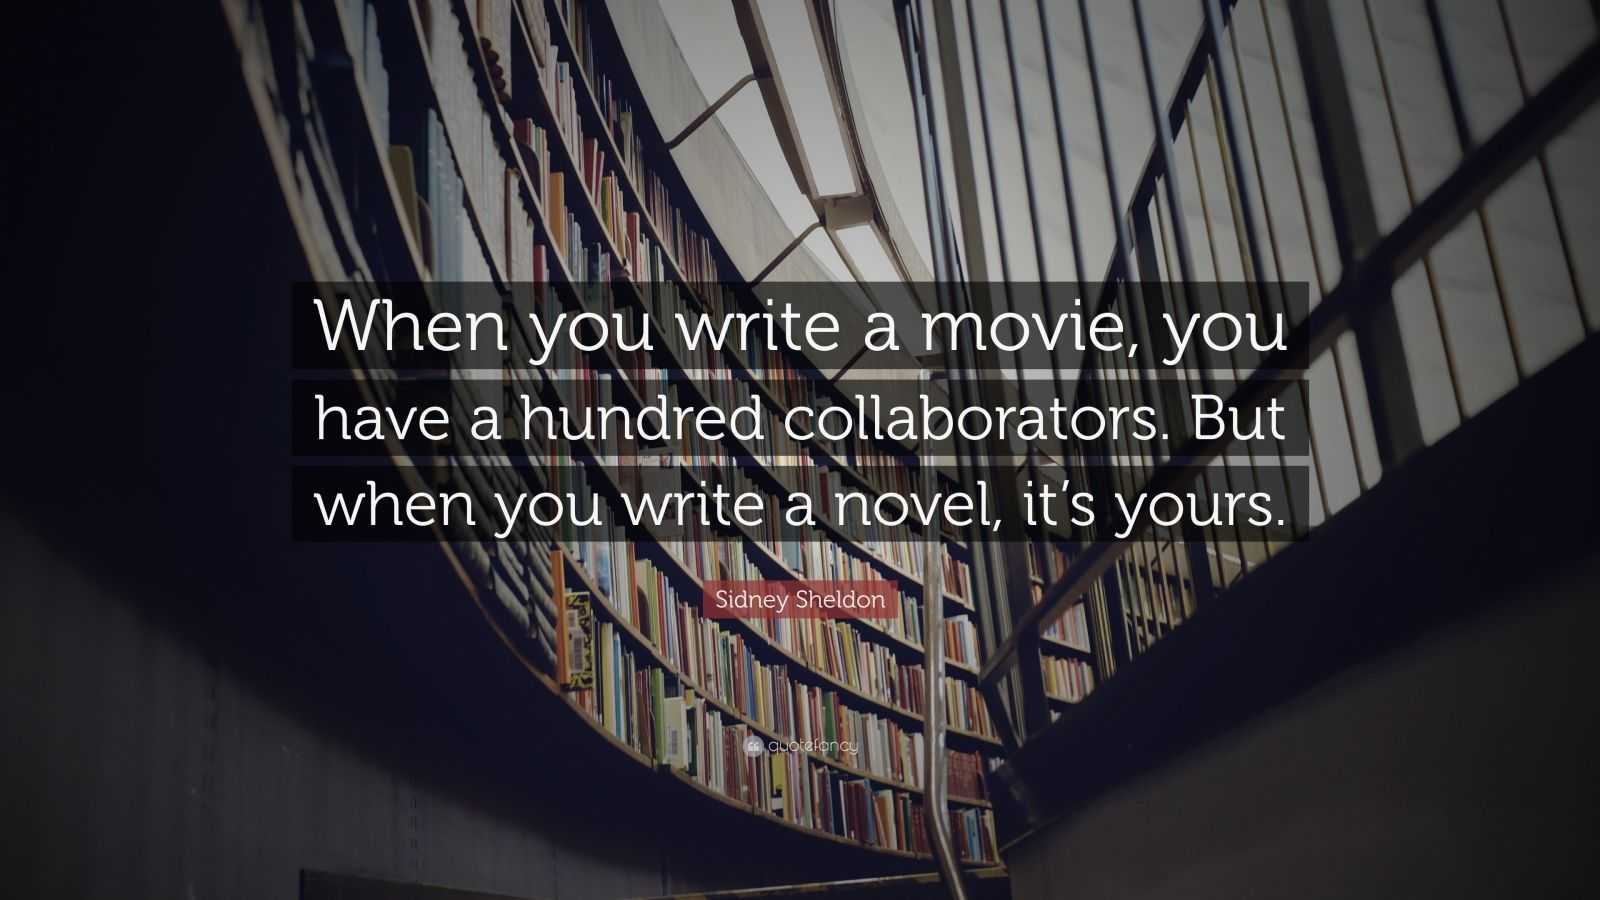 """Sidney Sheldon Quote: """"When you write a movie, you have a hundred collaborators. But when you write a novel, it's yours."""""""